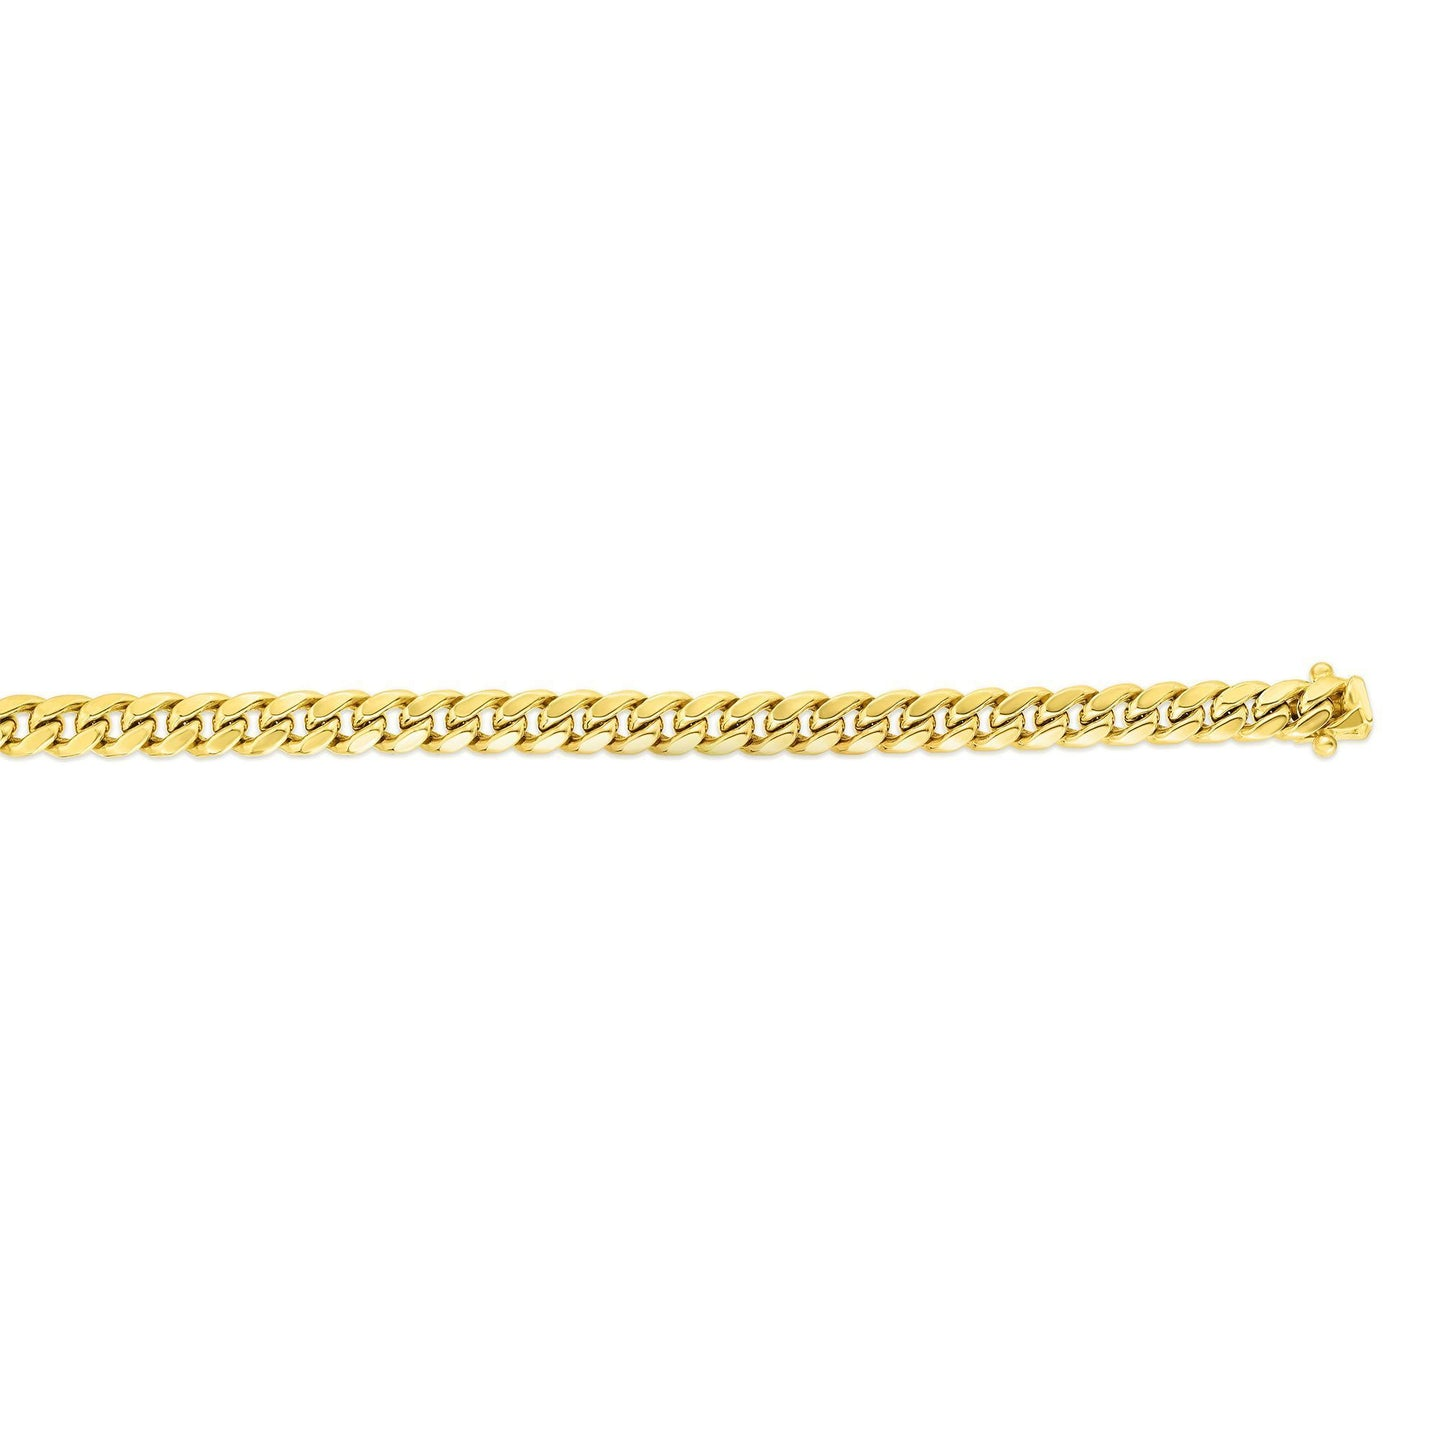 Sabel Men's 14K Yellow Gold Lite Miami Cuban Chain Necklace with Box Clasp